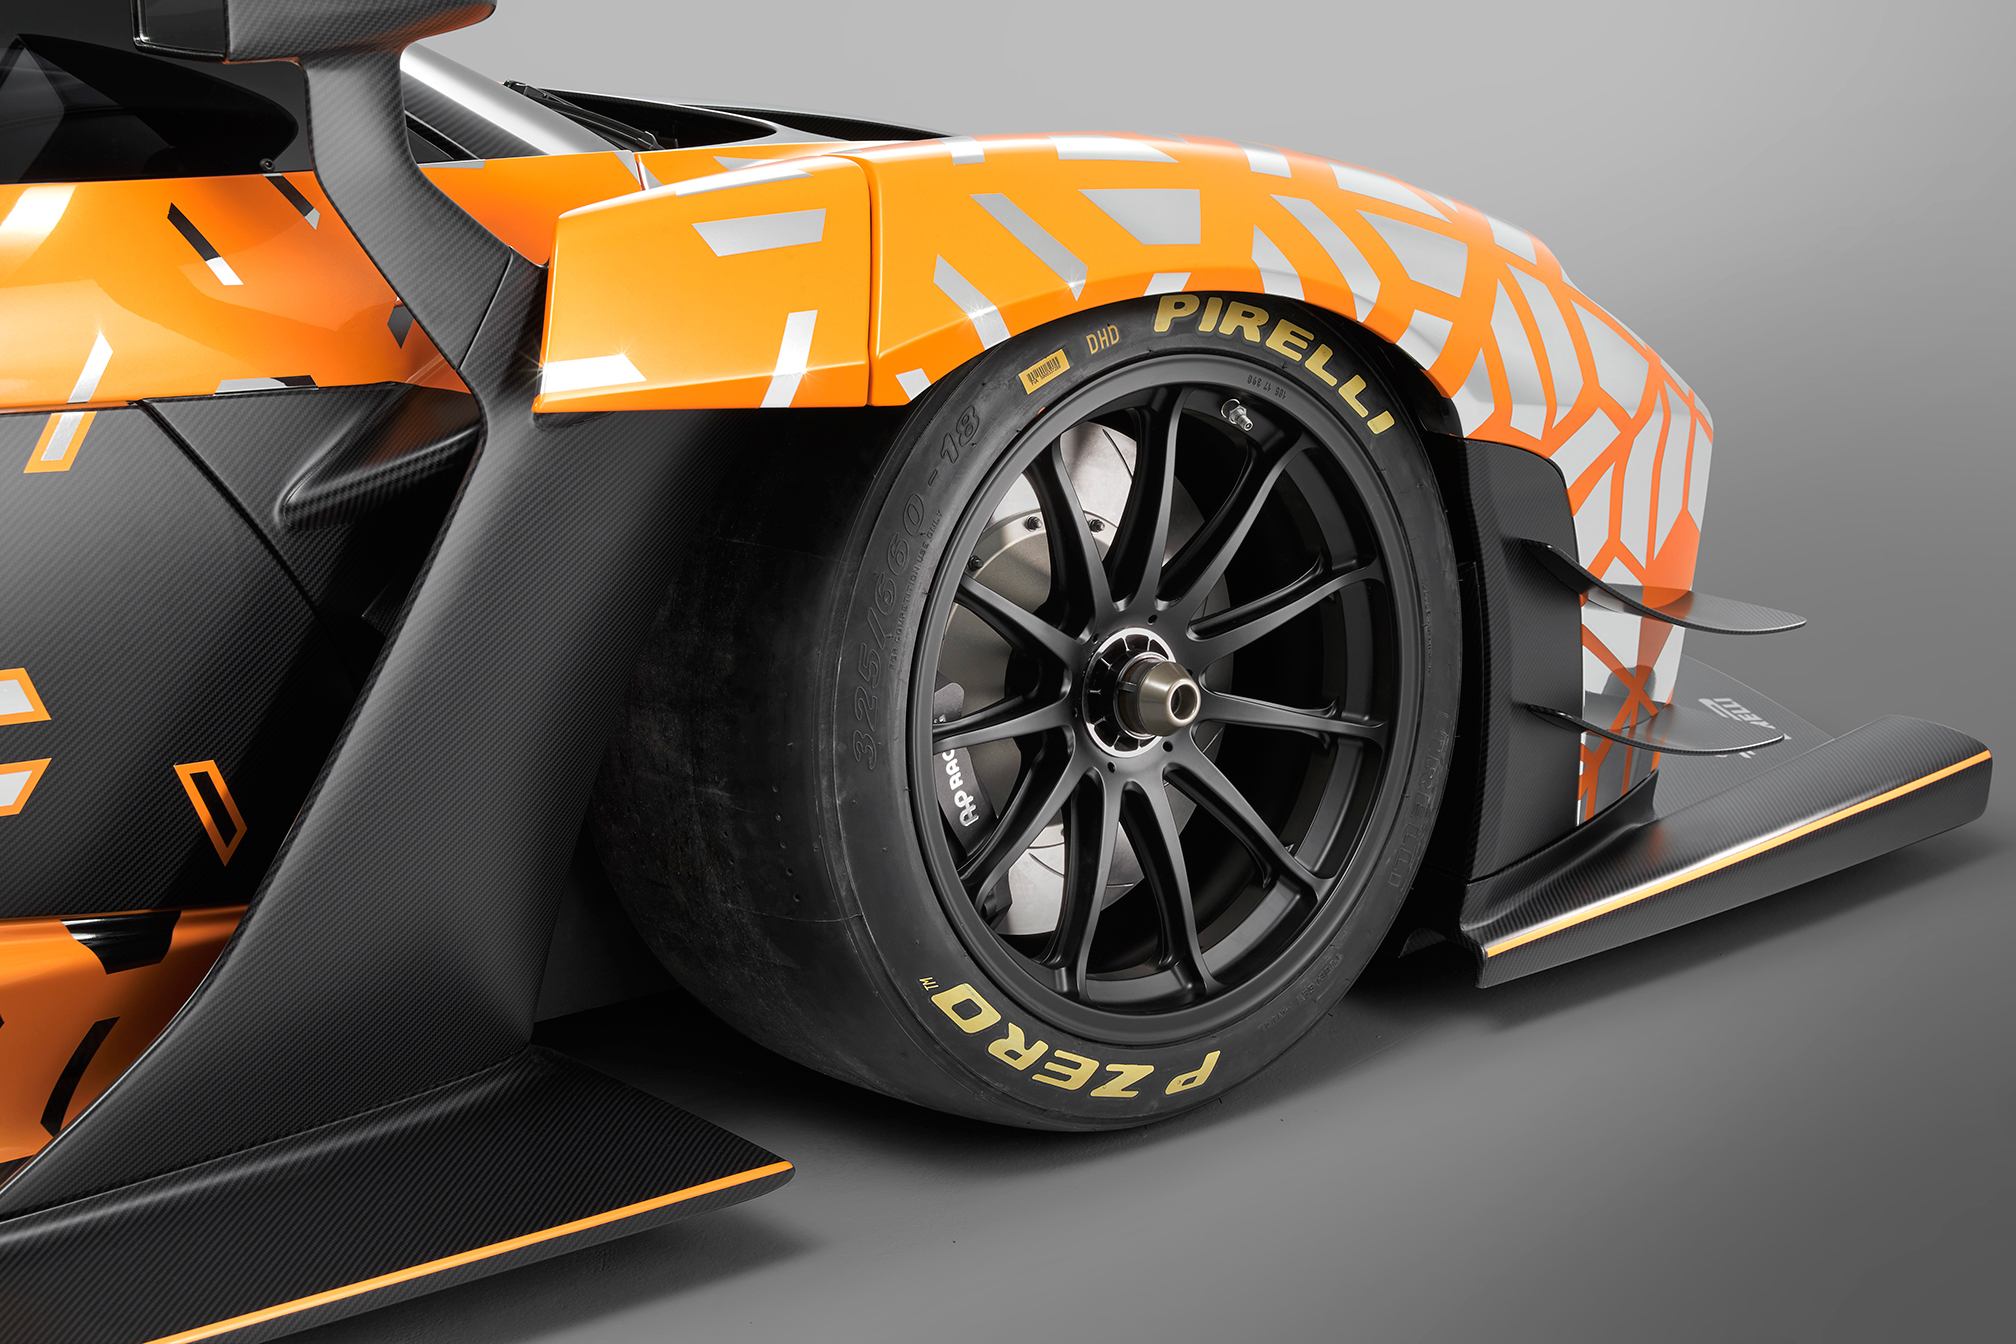 McLaren Senna GTR - 2018 - front side view